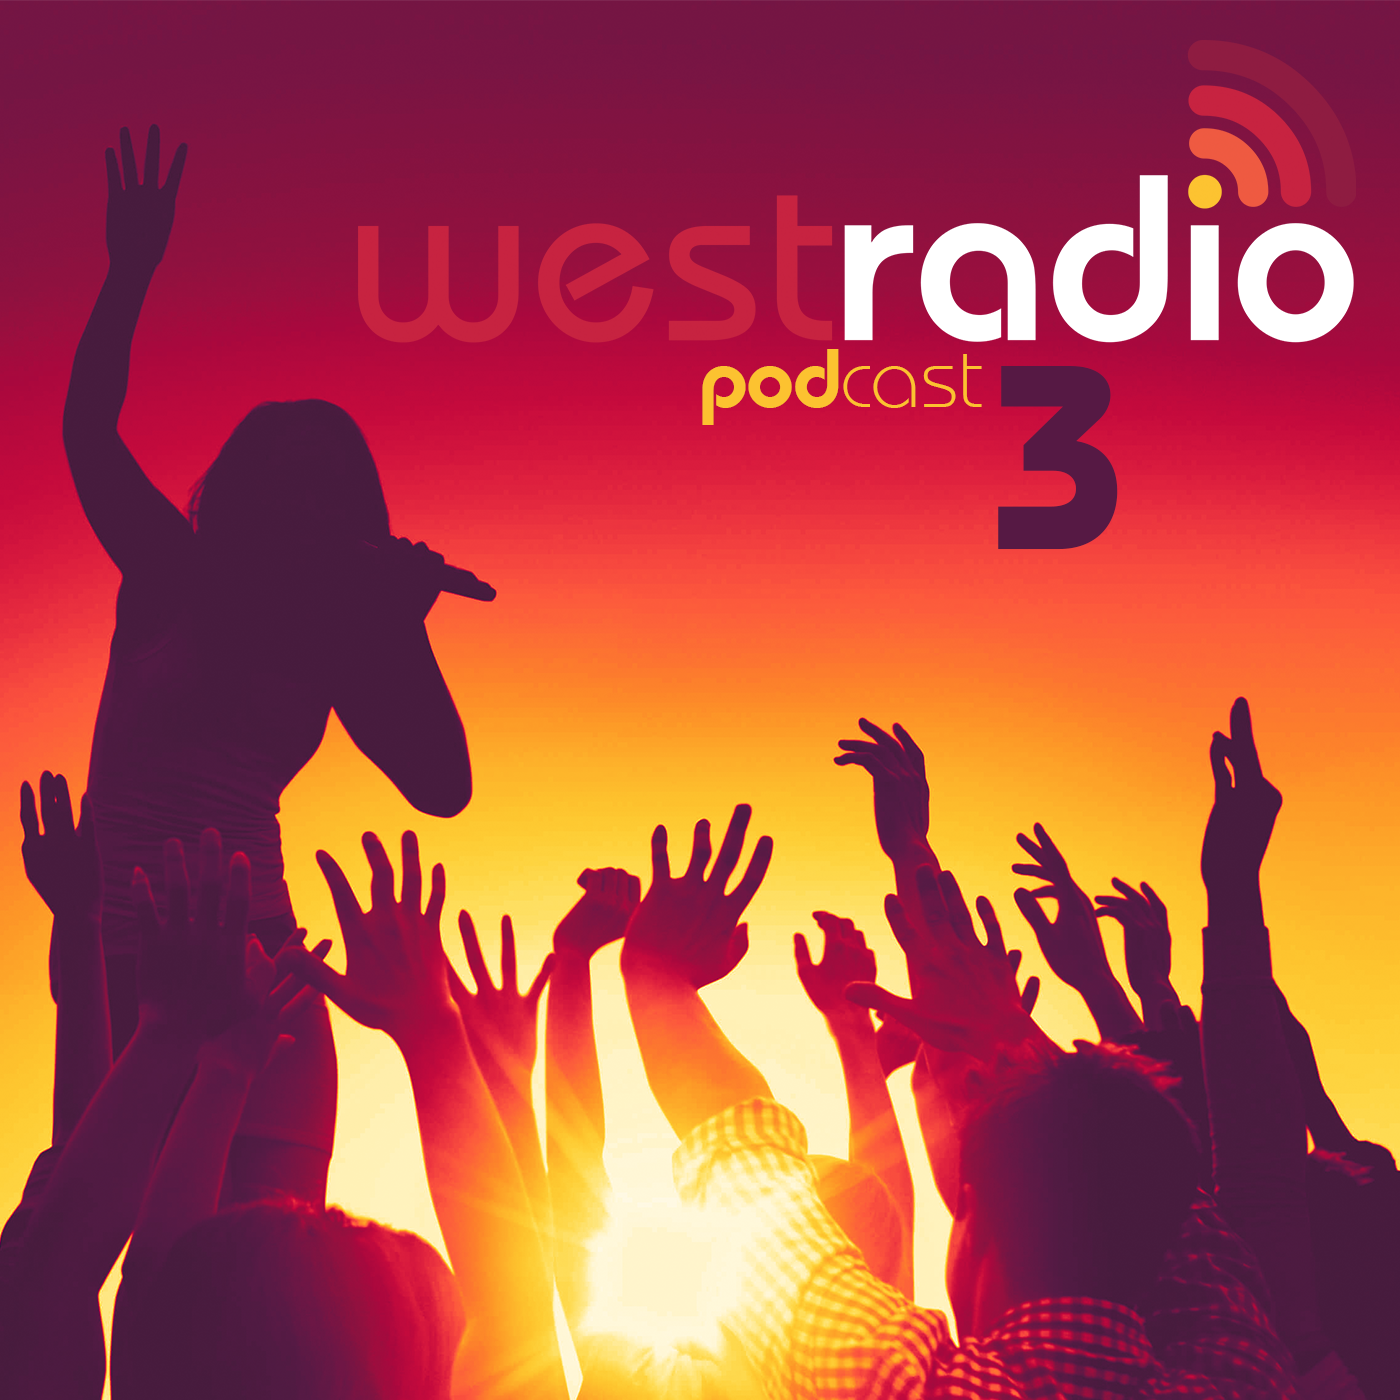 WestRadio - Podcast - 3.0